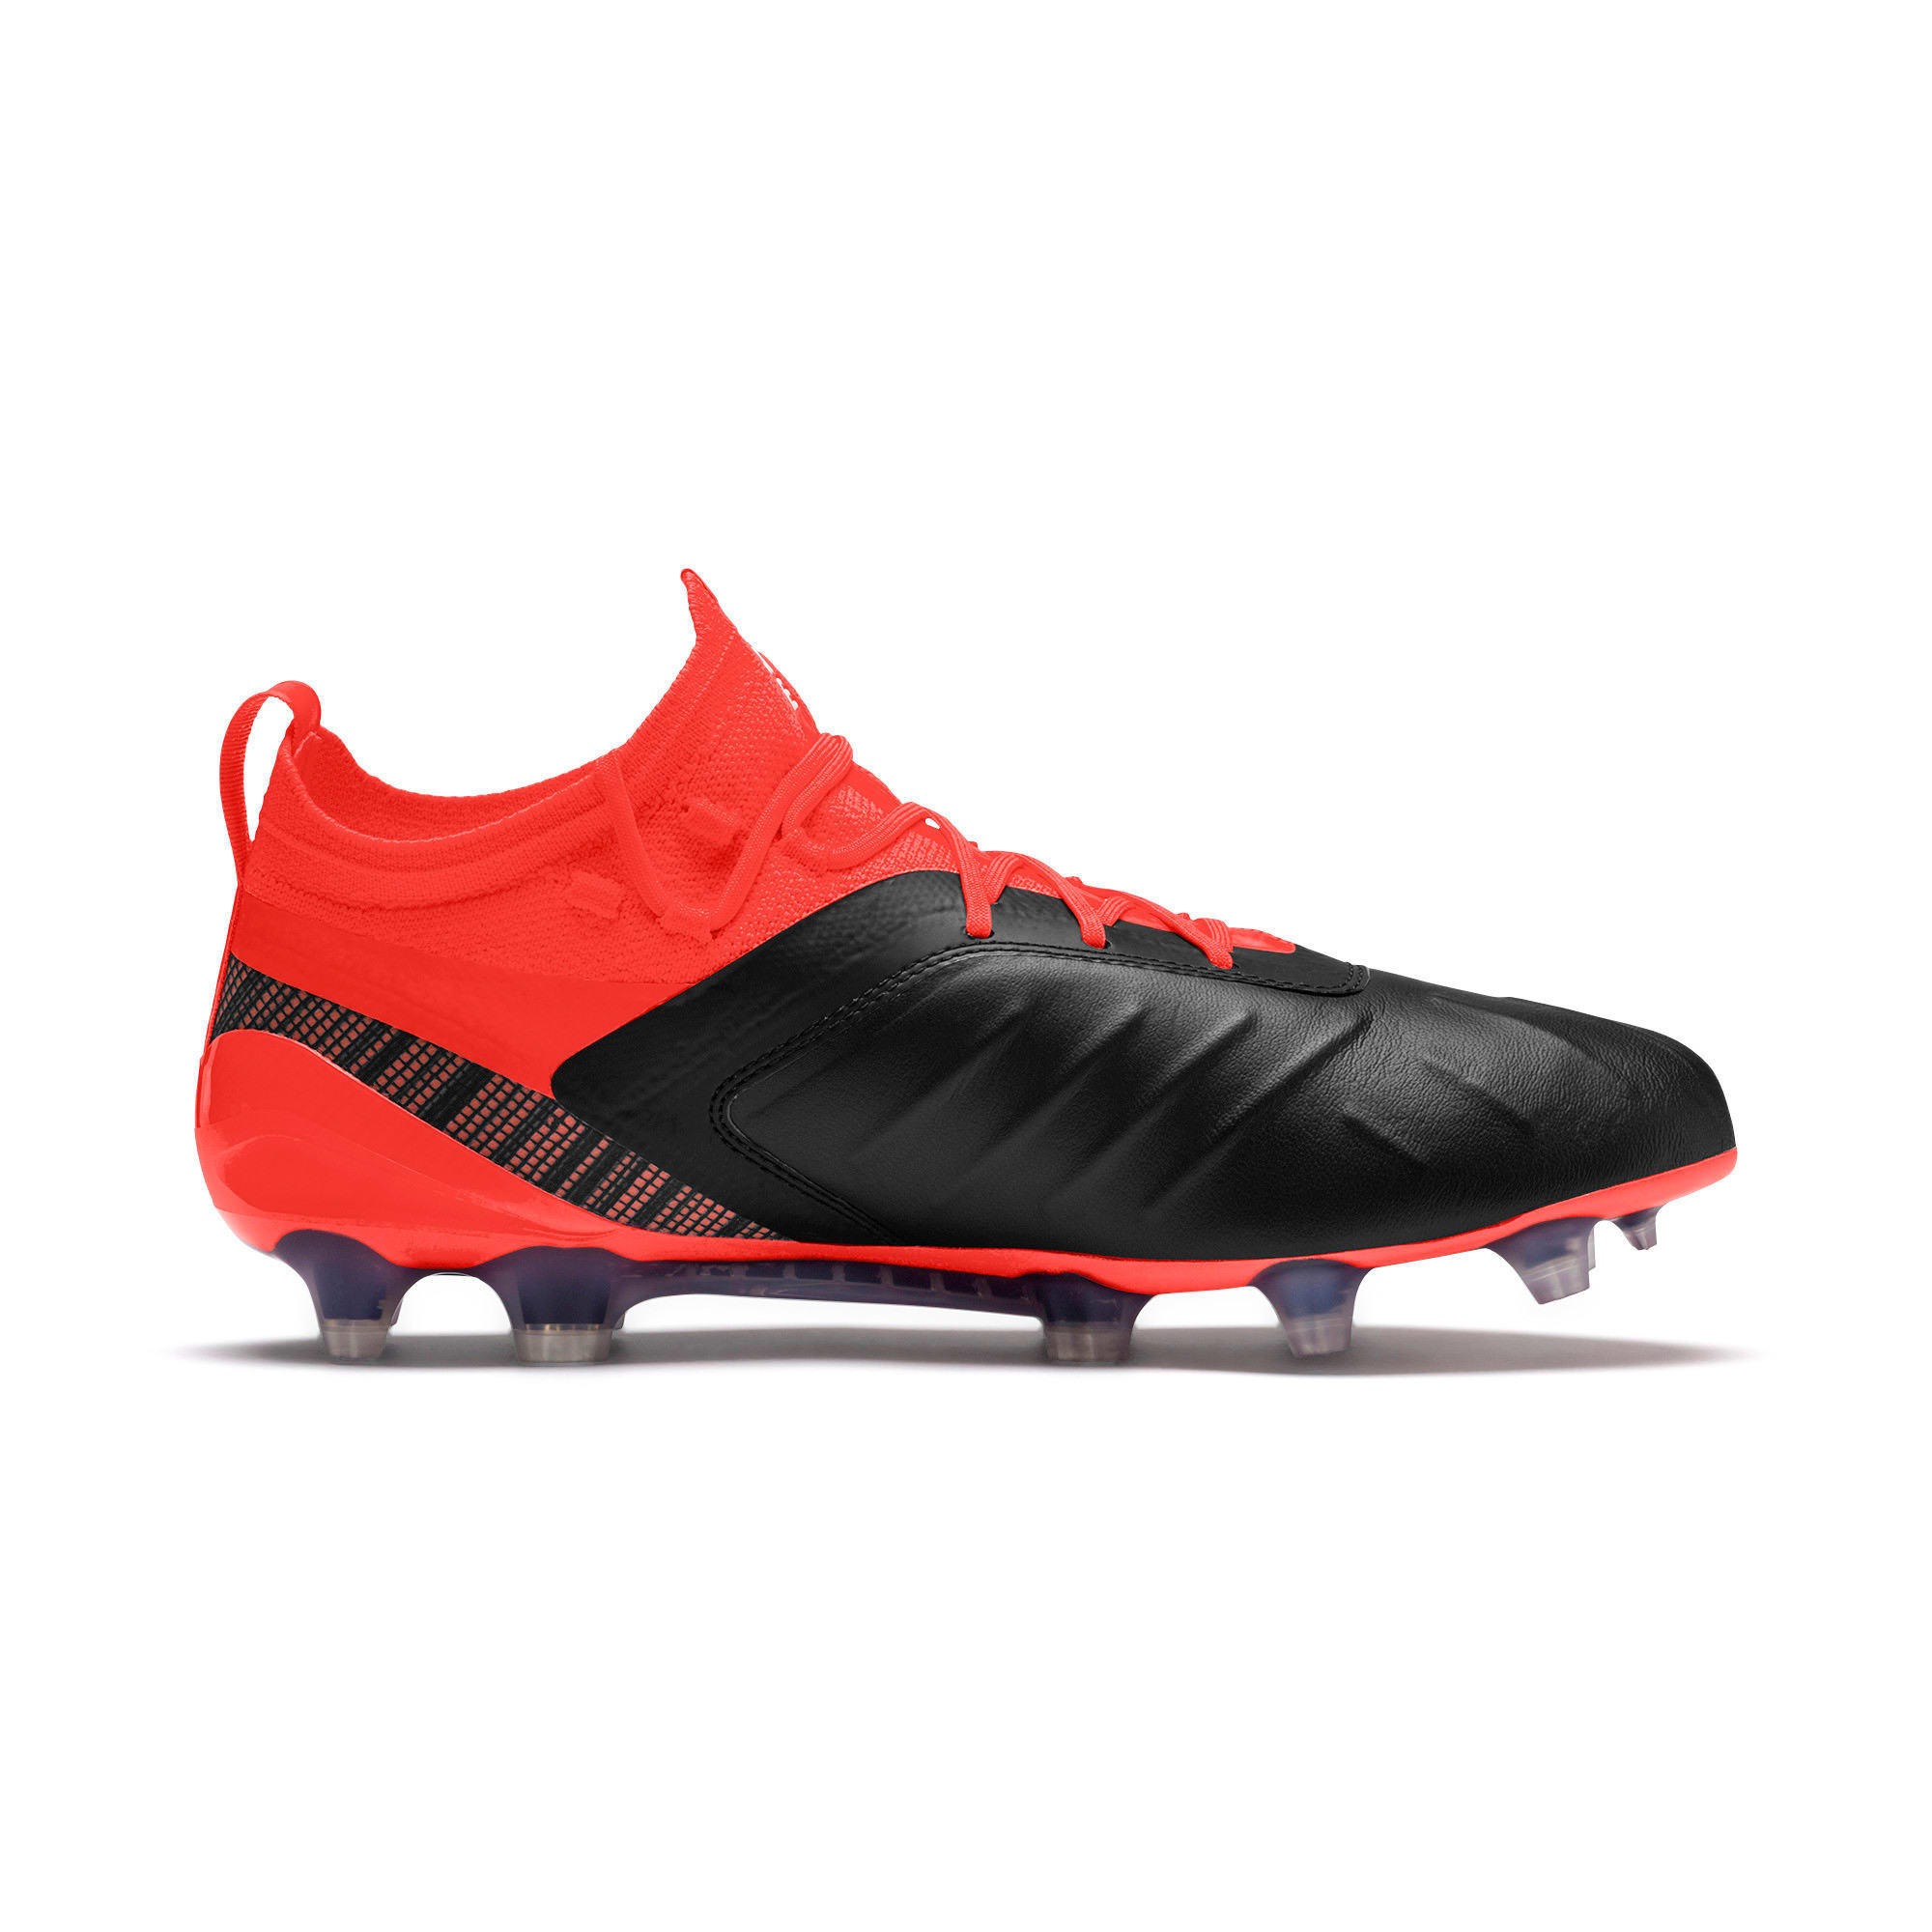 Thumbnail 6 of PUMA ONE 5.1 evoKNIT FG/AG Herren Fußballschuhe, Black-Nrgy Red-Aged Silver, medium